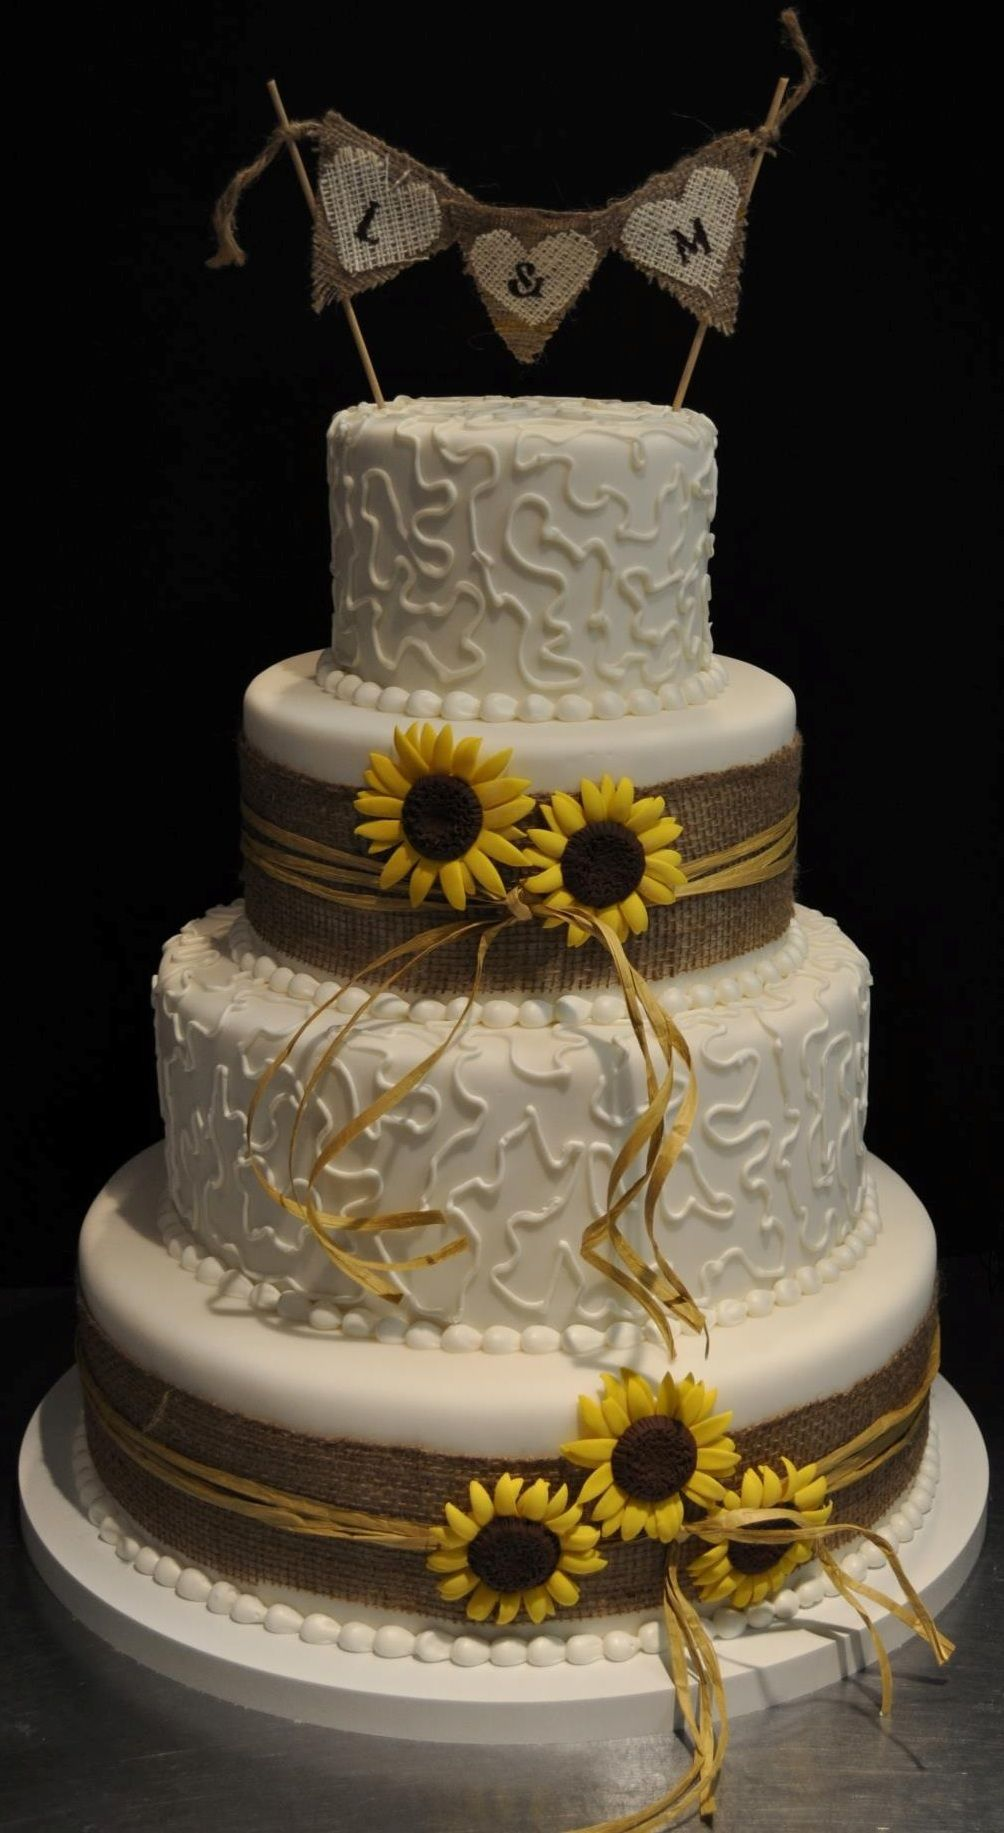 A wedding cake with country theme from Sweet Tweets Cakery